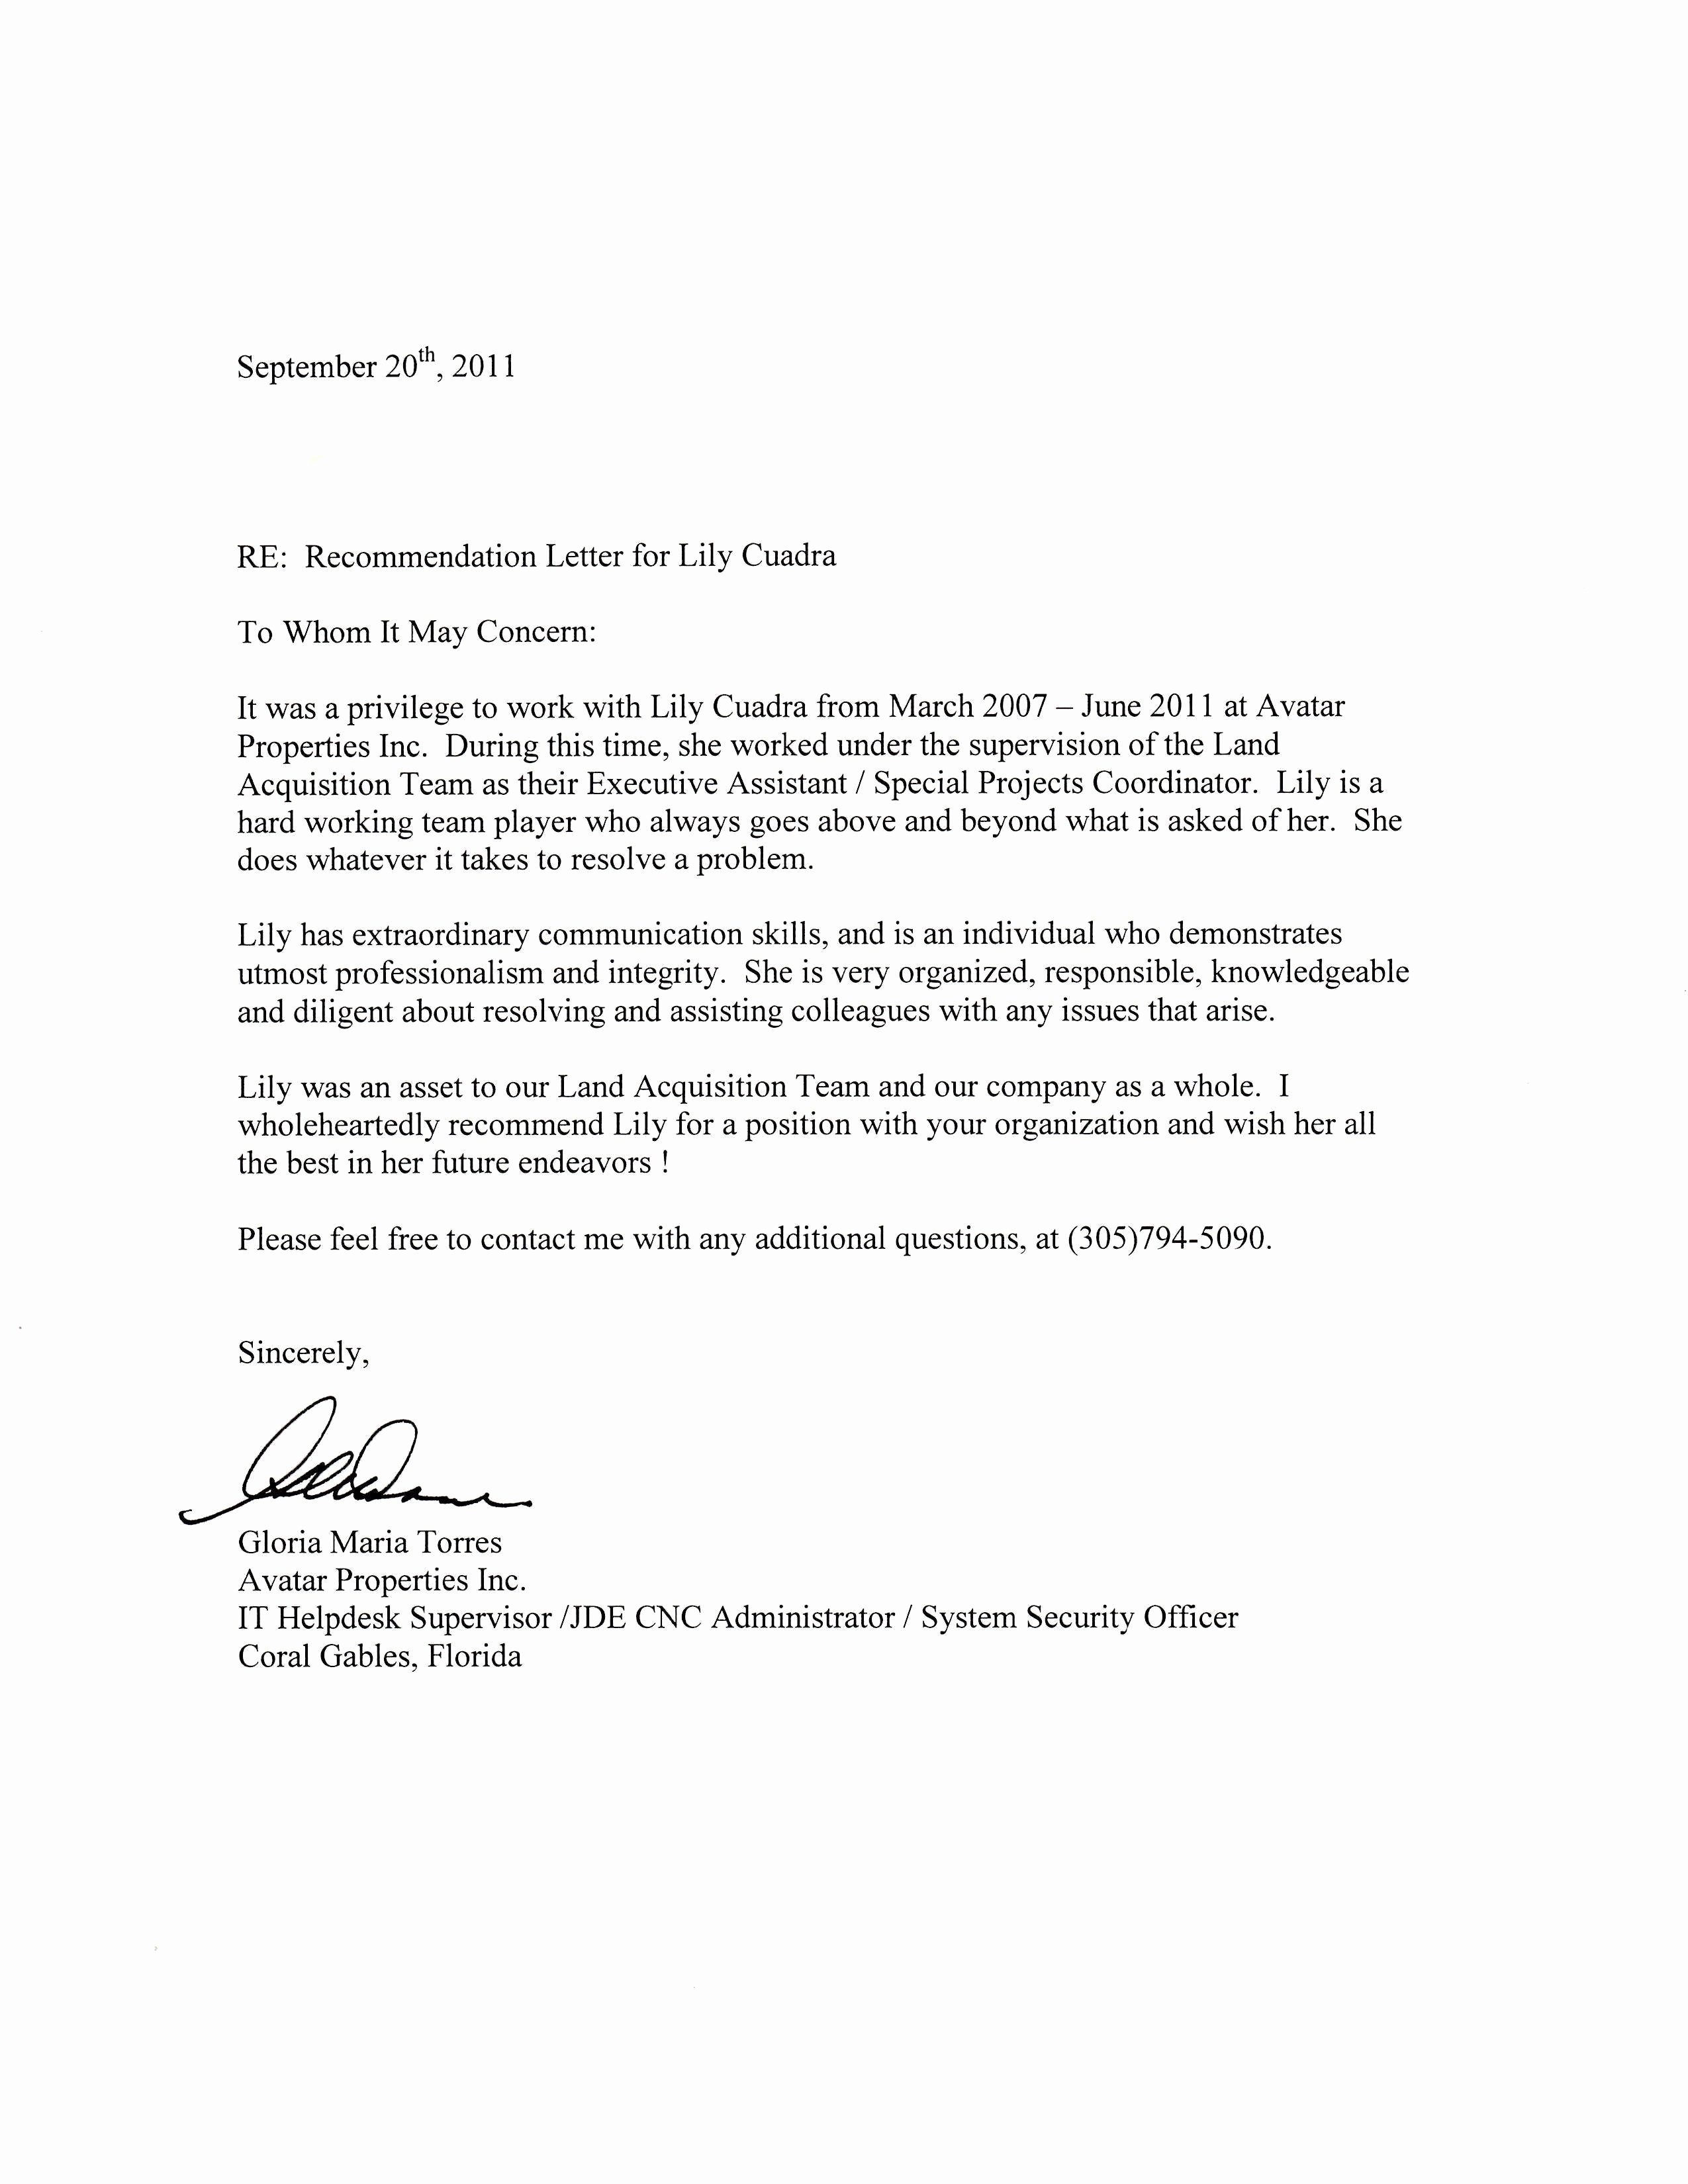 Recommendation Letter Examples for Jobs Awesome Simple Guide Professional Reference Letter with Samples